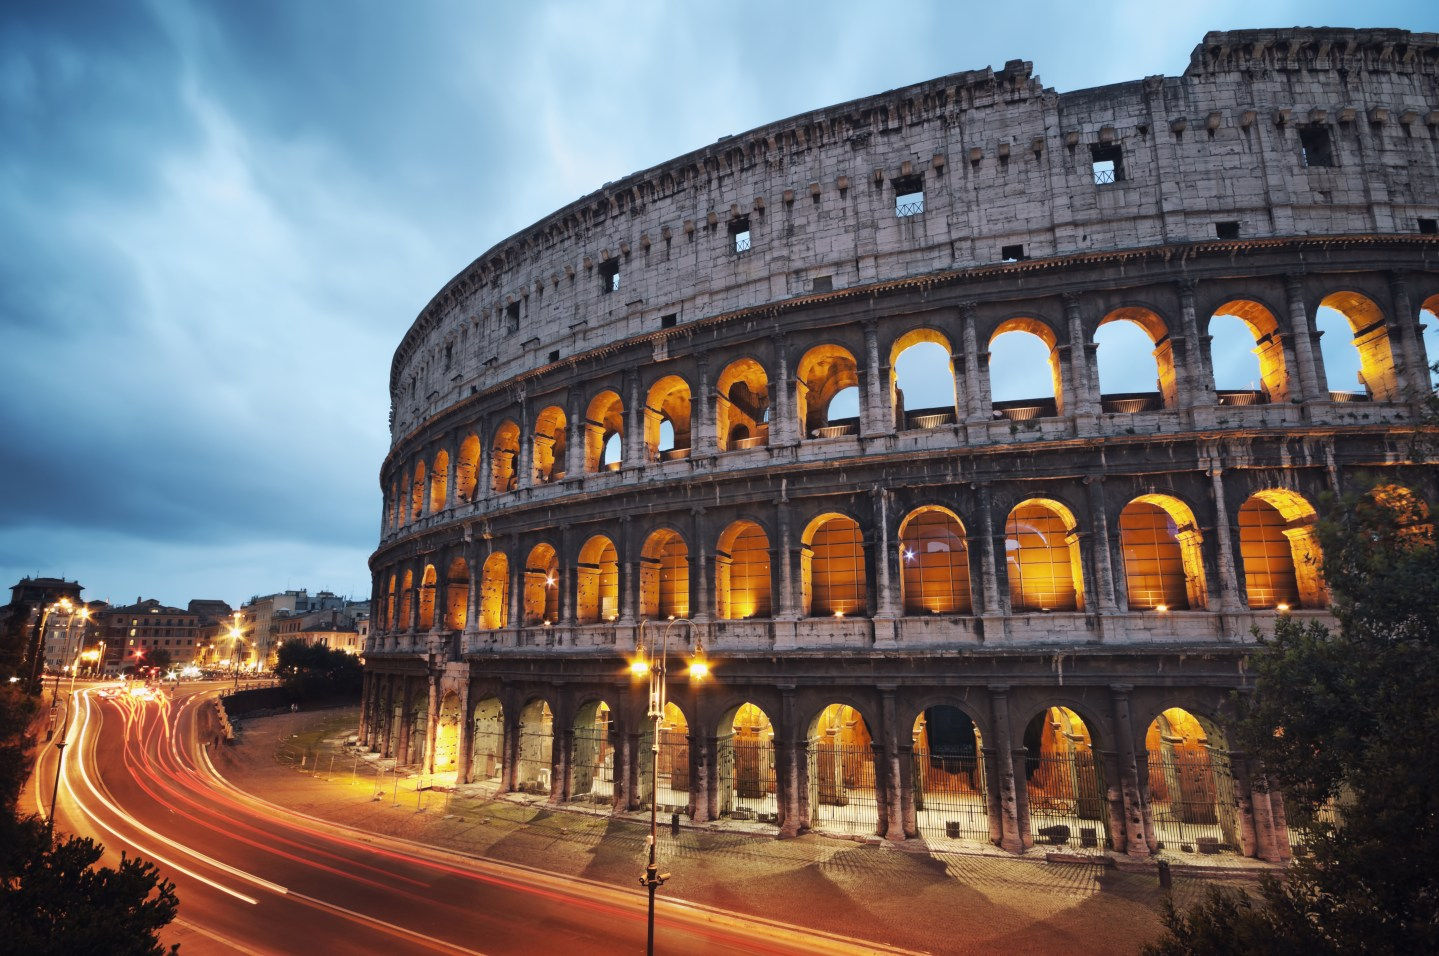 The Coliseum in Rome, Italy - Inspirational Stories